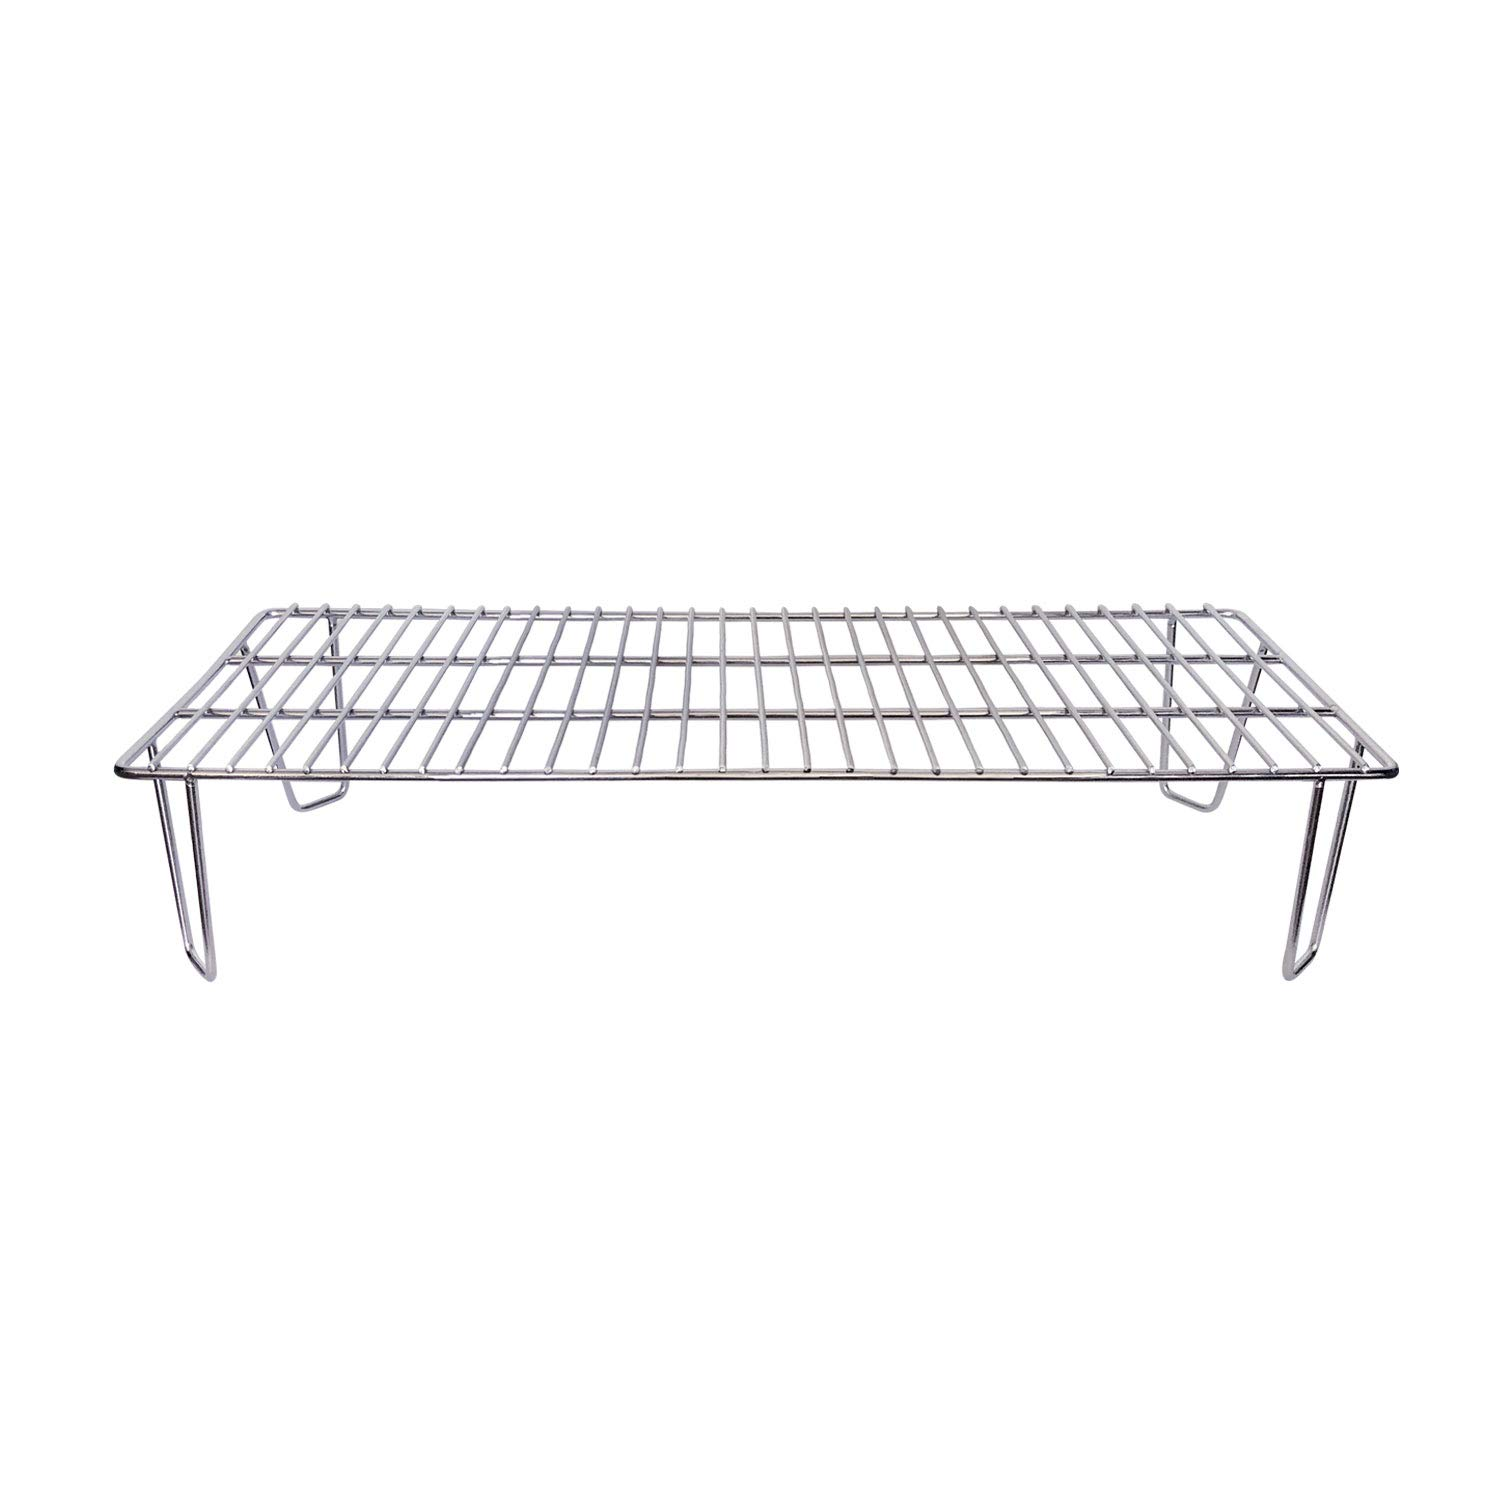 Green Mountain Grill Gmg-6008 Upper Rack for Daniel Boone Pellet Grill by Green Mountain Grills